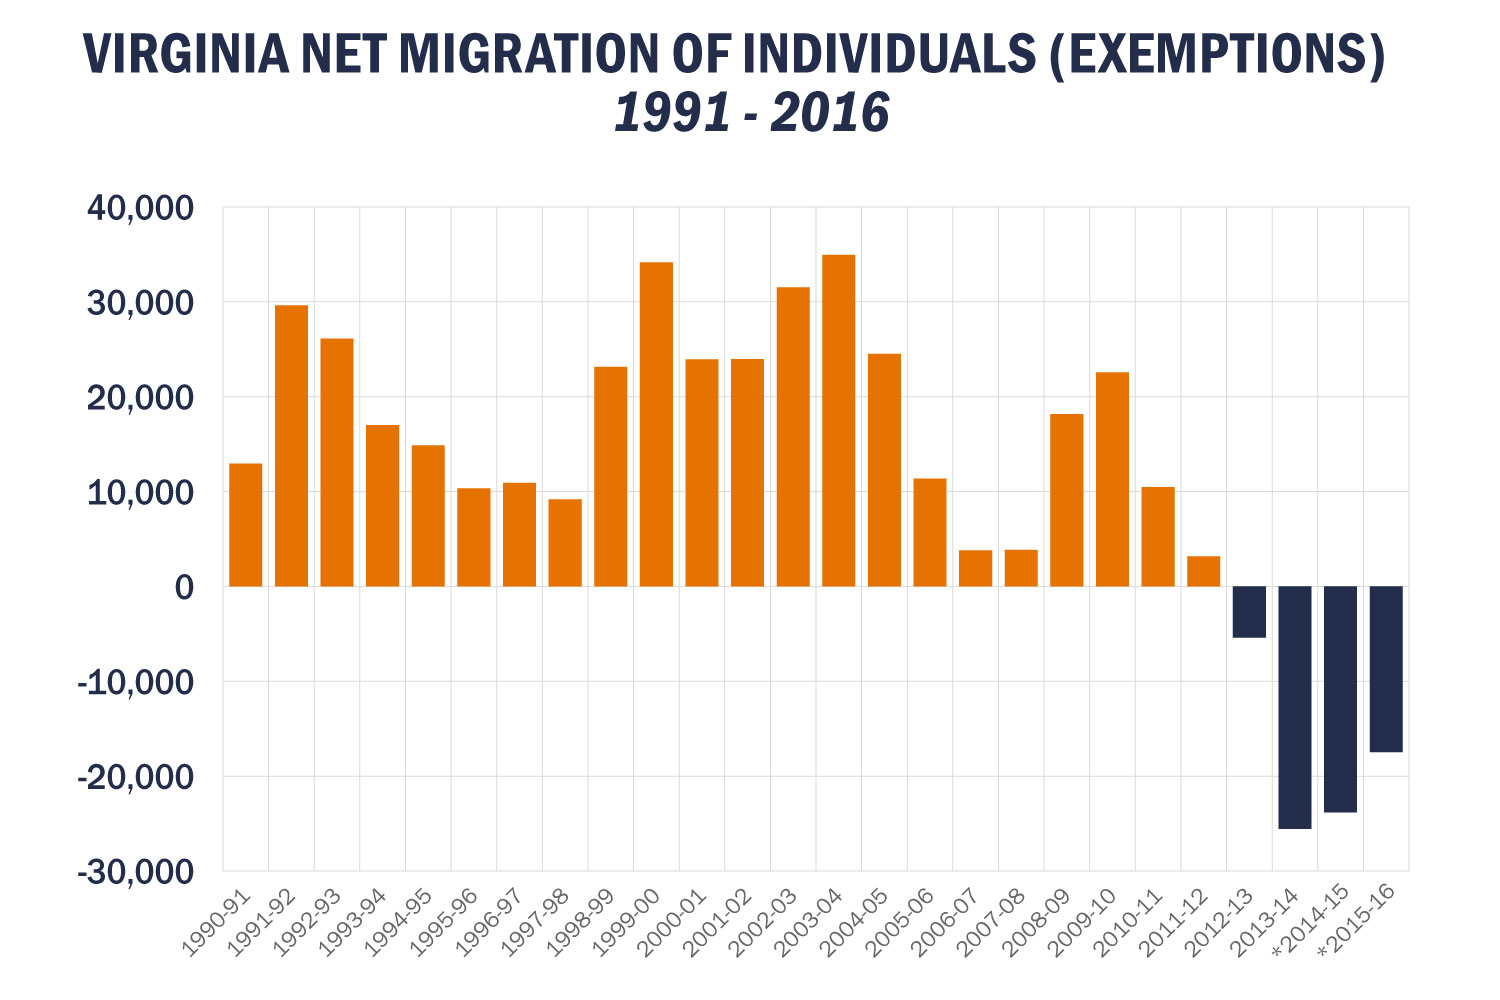 *Census migration data (2014-15 net domestic migration). IRS migration data (total net migration) used for all other years.